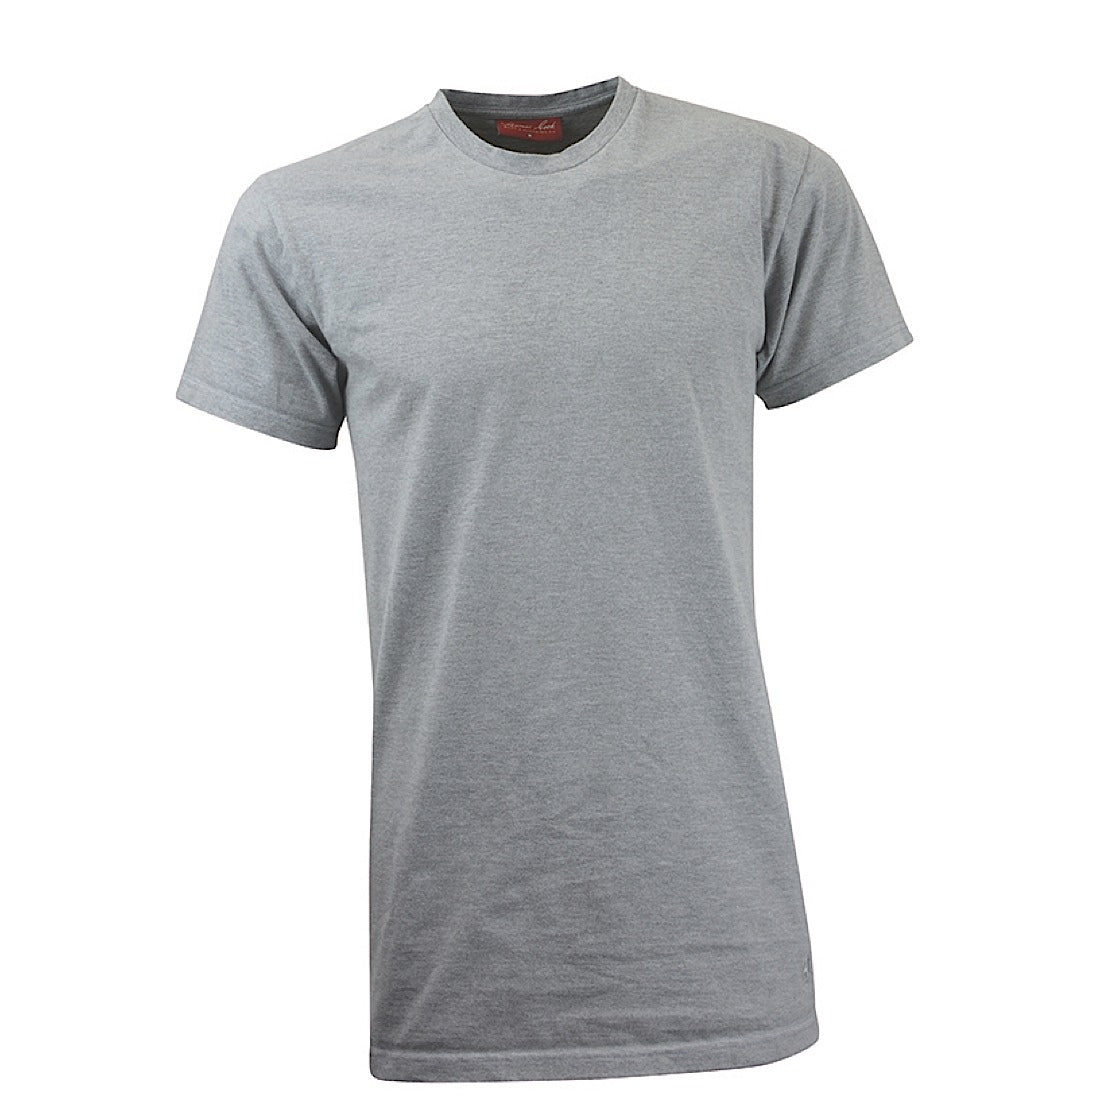 Thomas Cook Mens Classic Fit T-Shirt Grey Marle